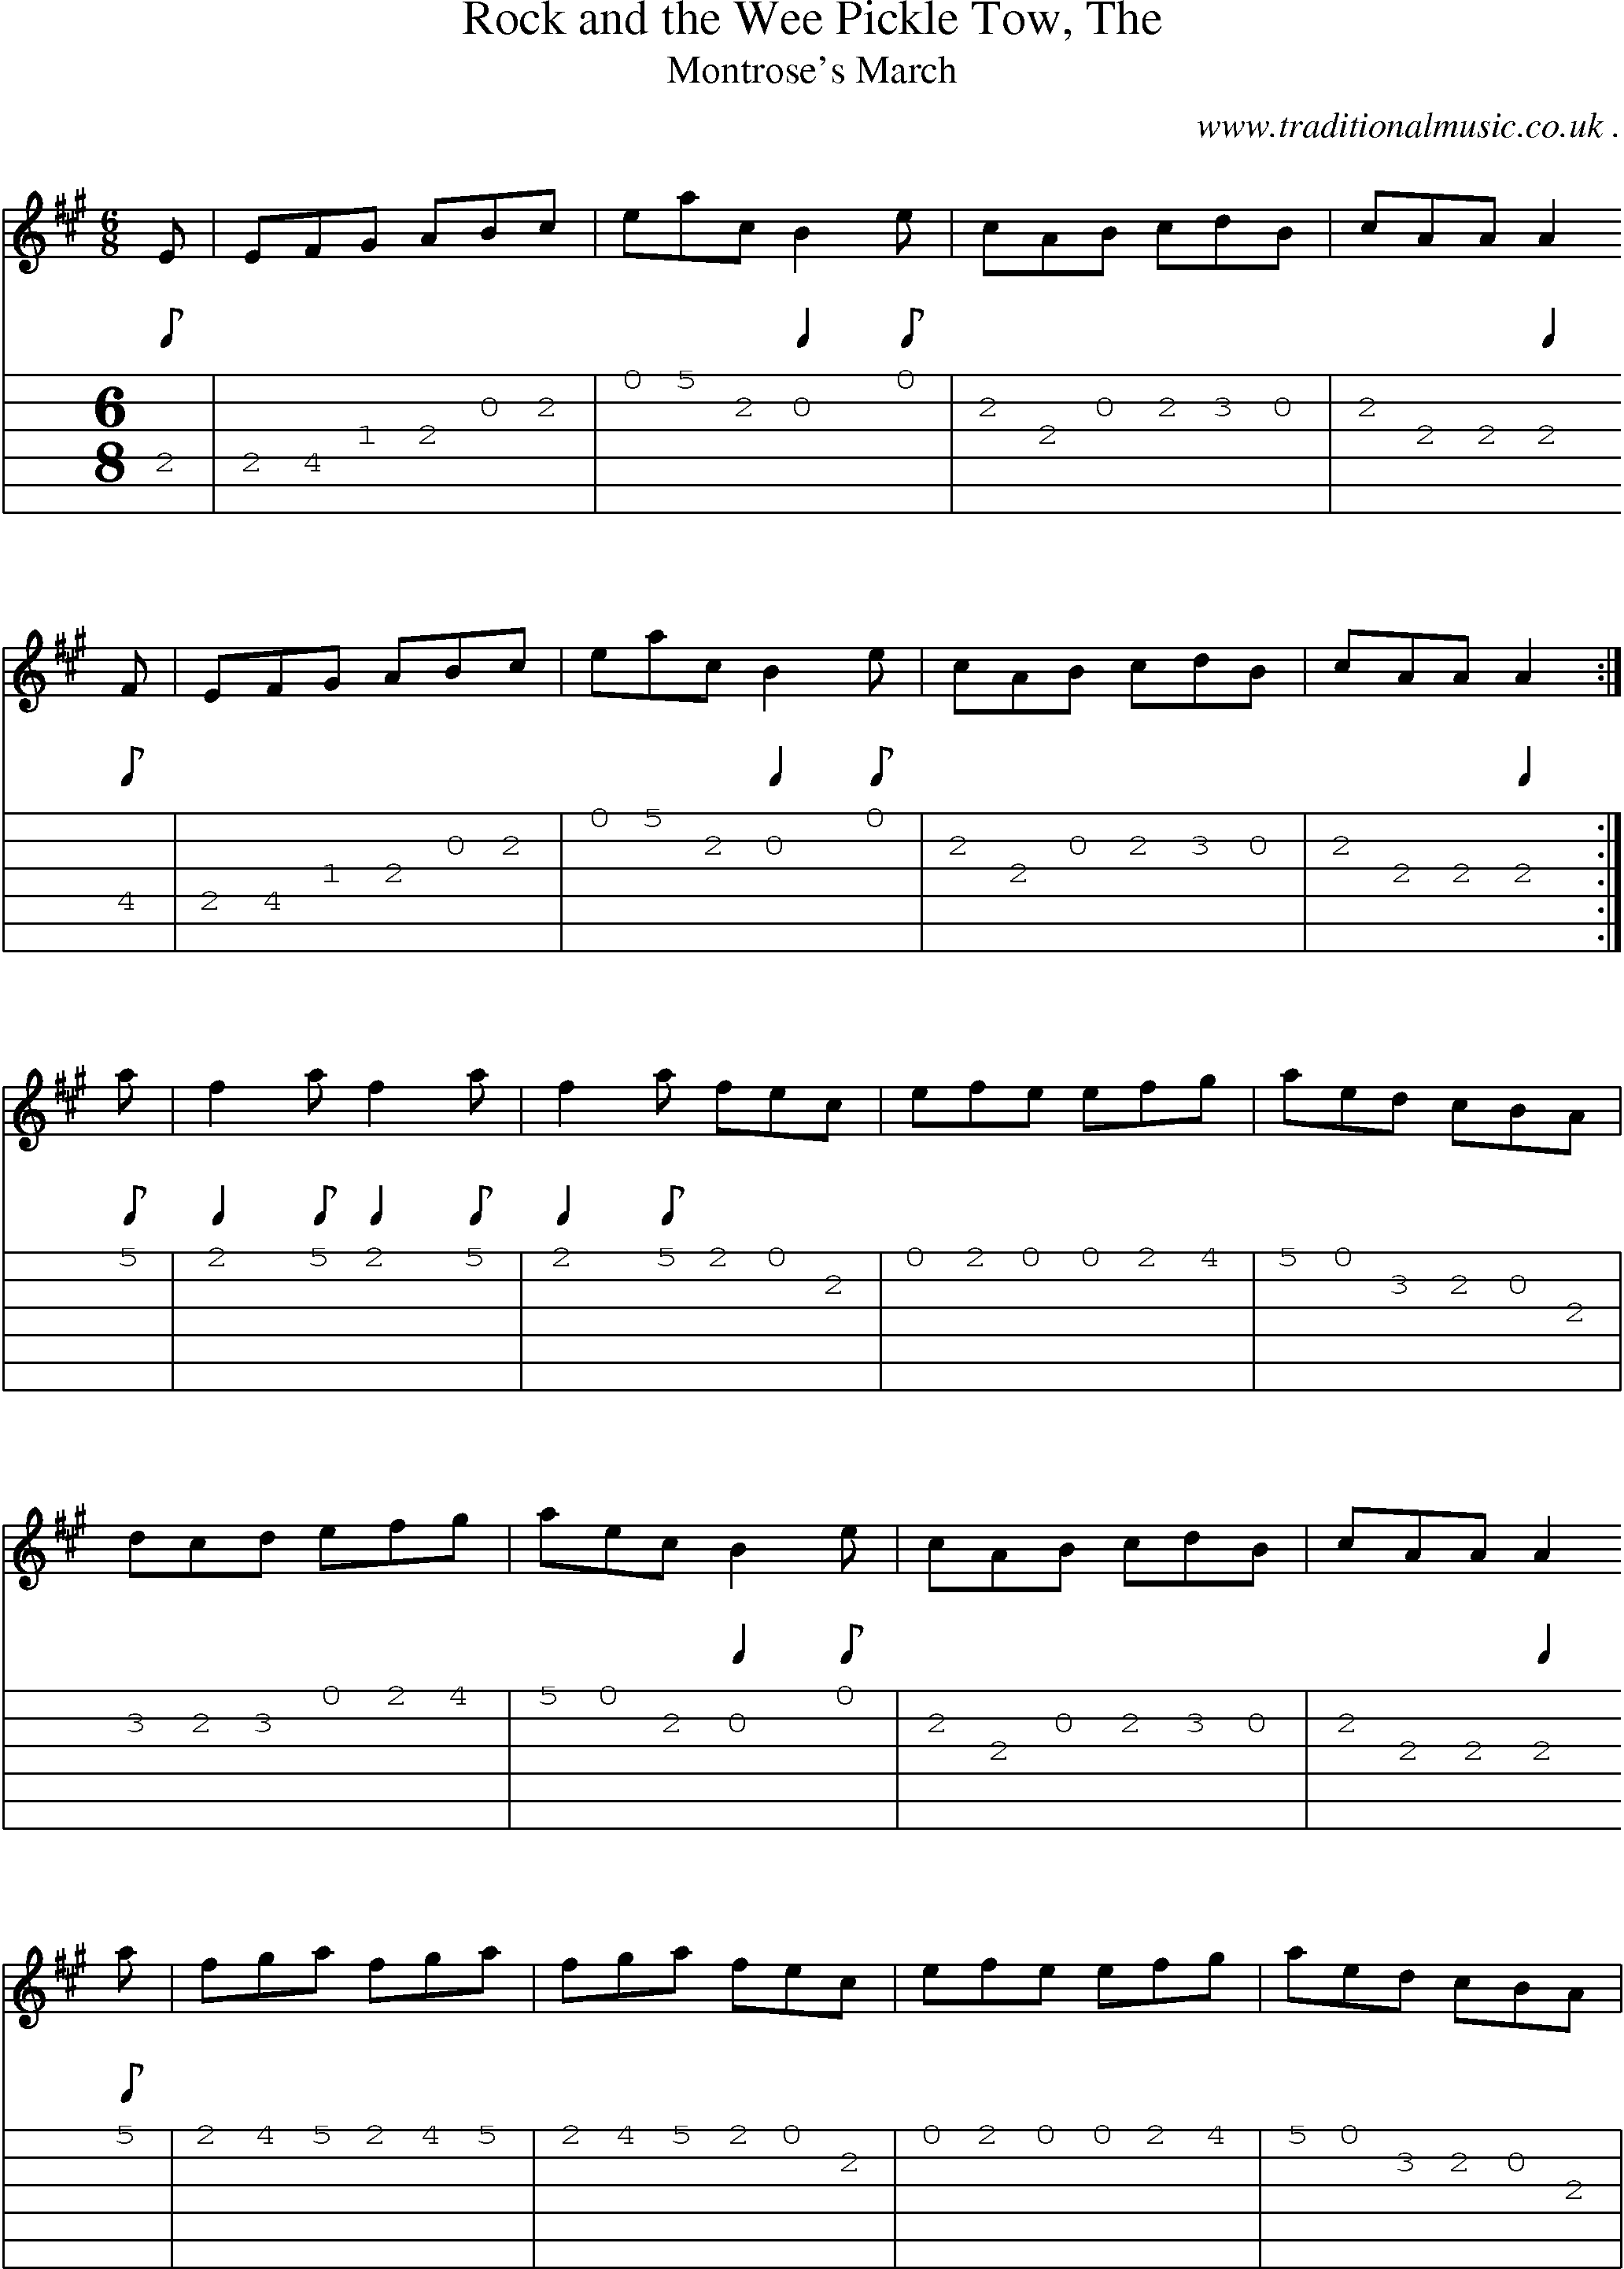 Scottish Tune, Sheetmusic, Midi, Mp3, Guitar chords u0026 tabs: Rock And The Wee Pickle Tow The